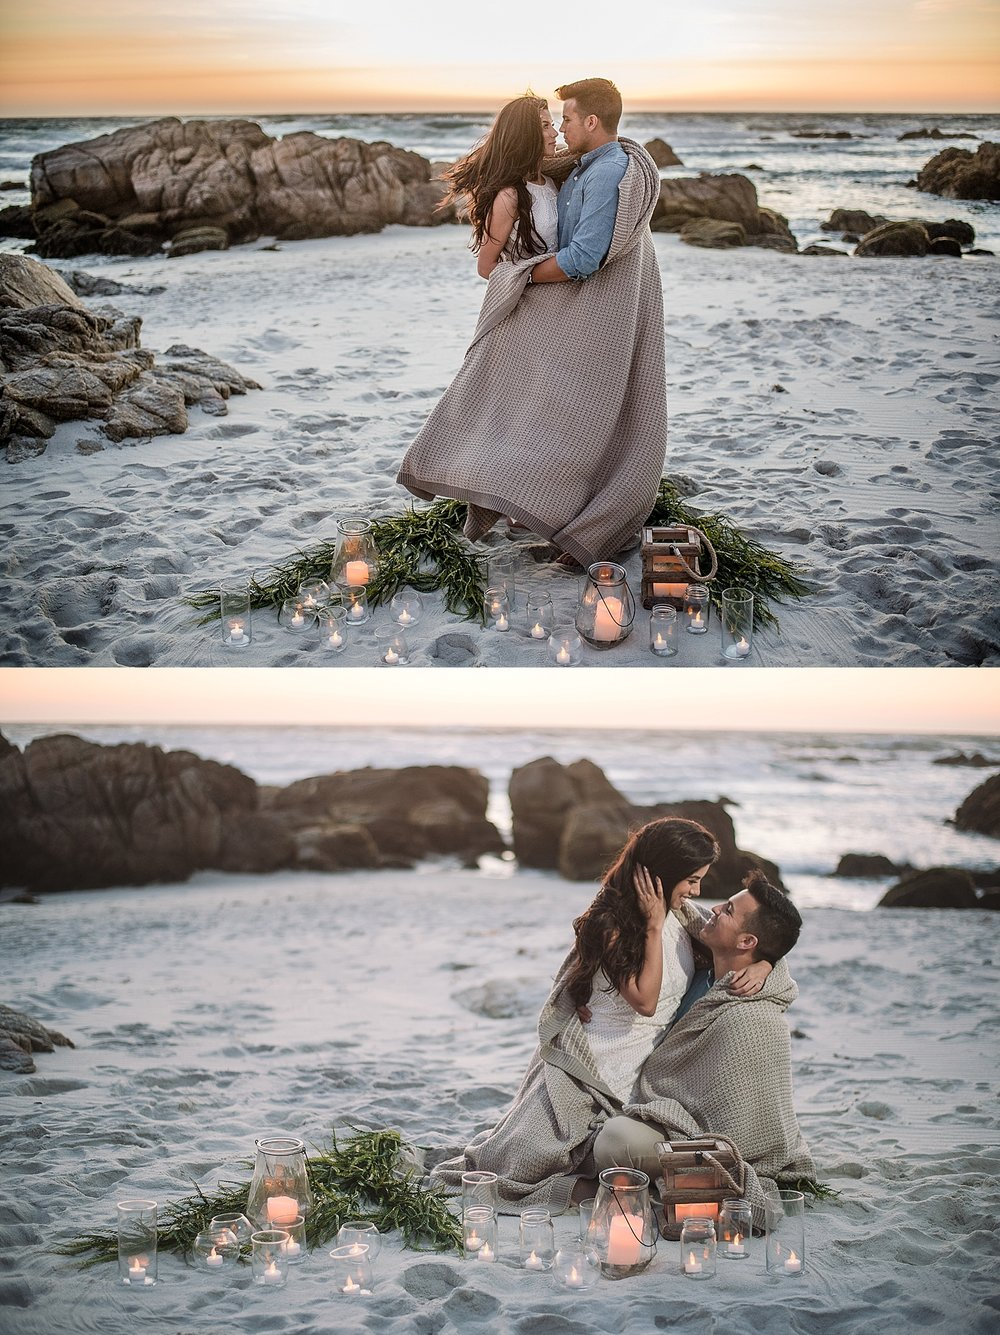 Montery_Carmel_by_the_Sea_Engagement12.jpg